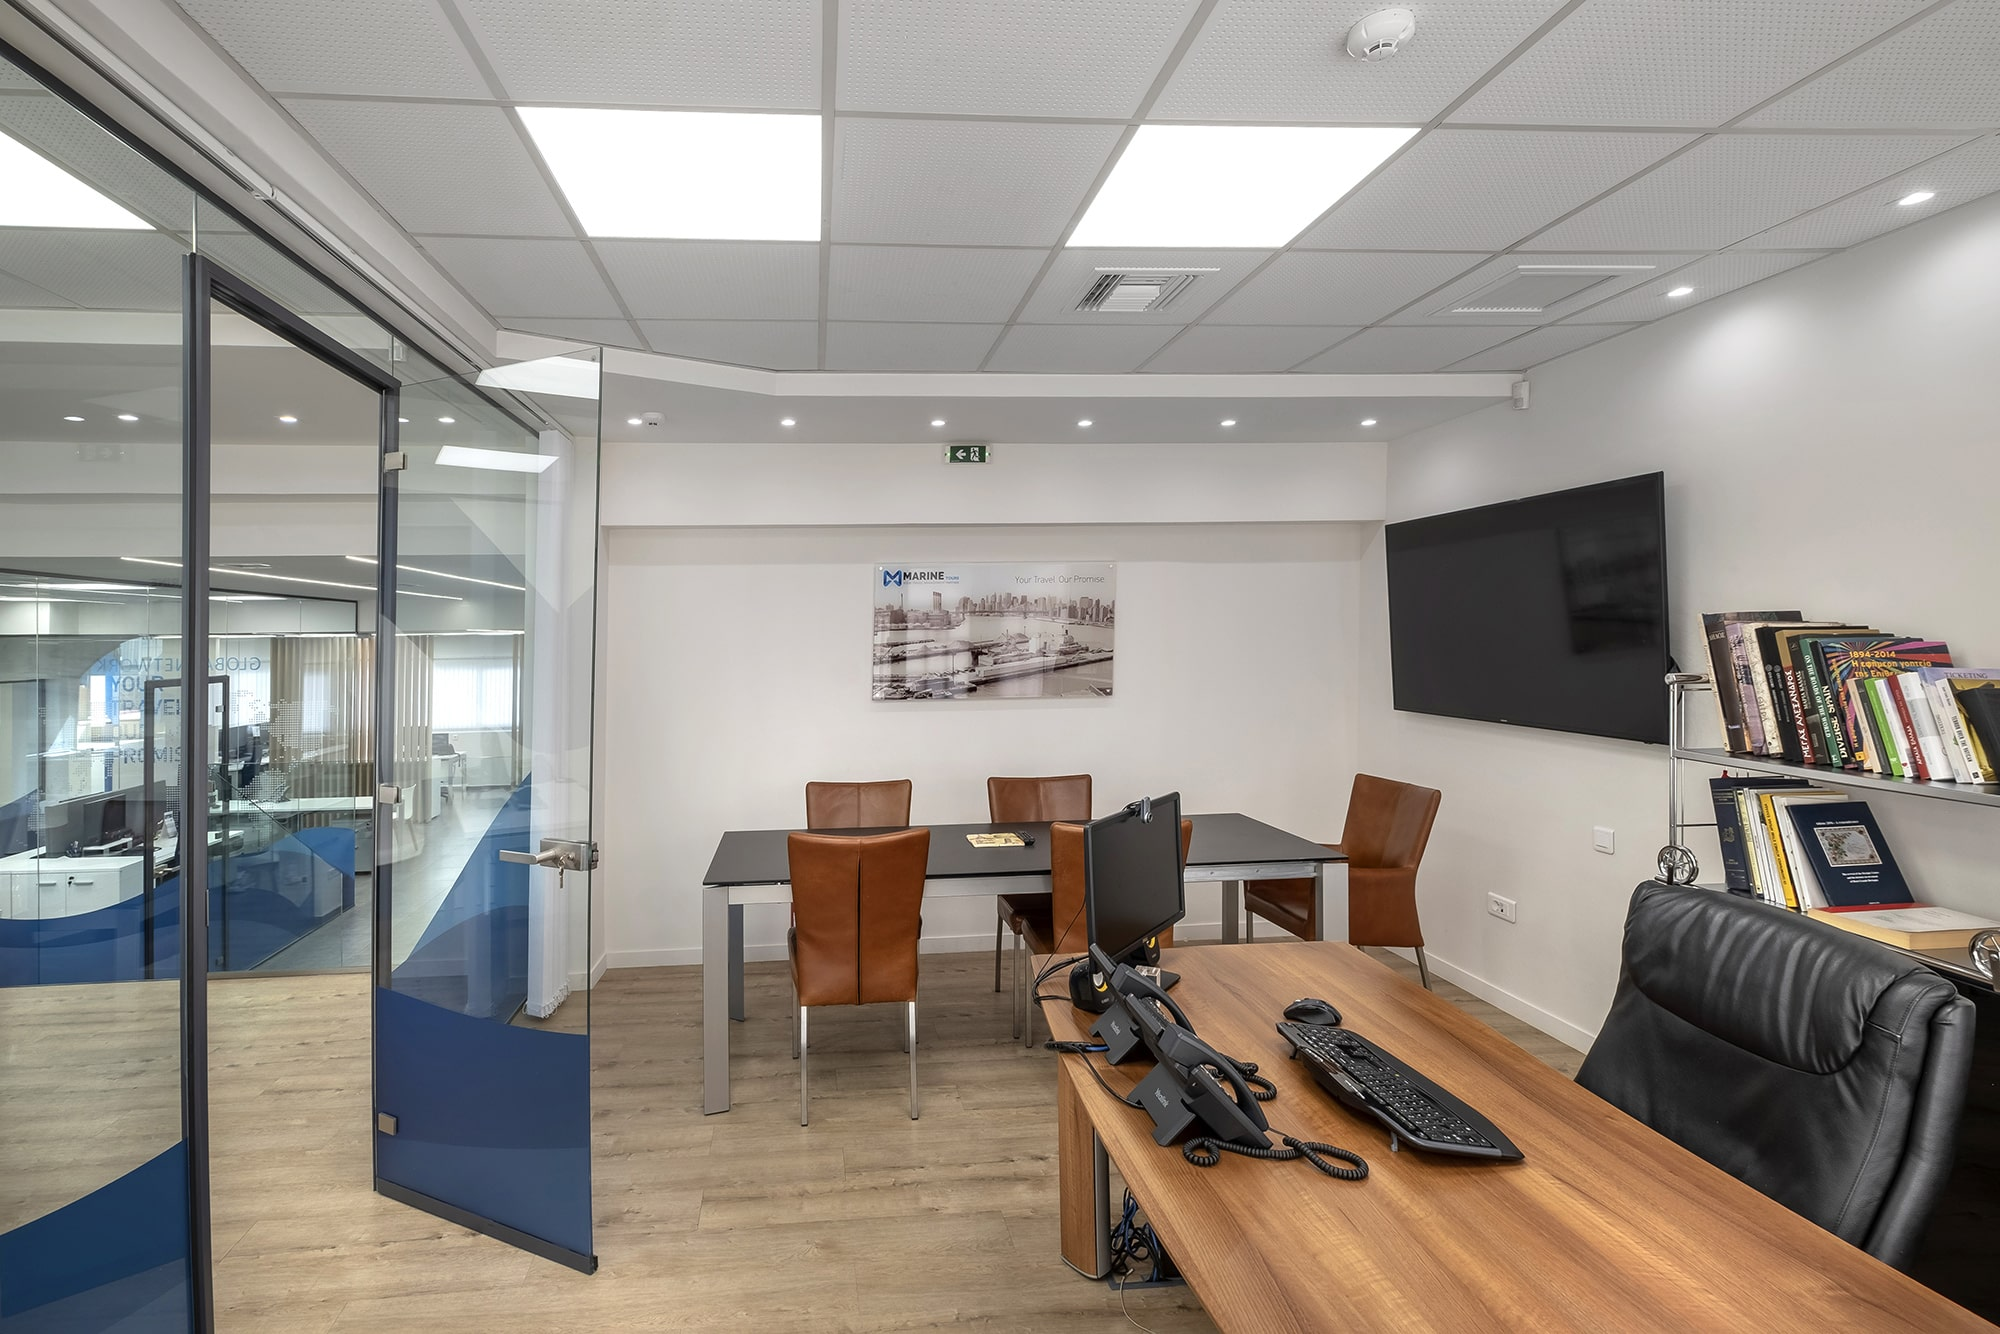 Marine Tours - Office interior design for the HQs.